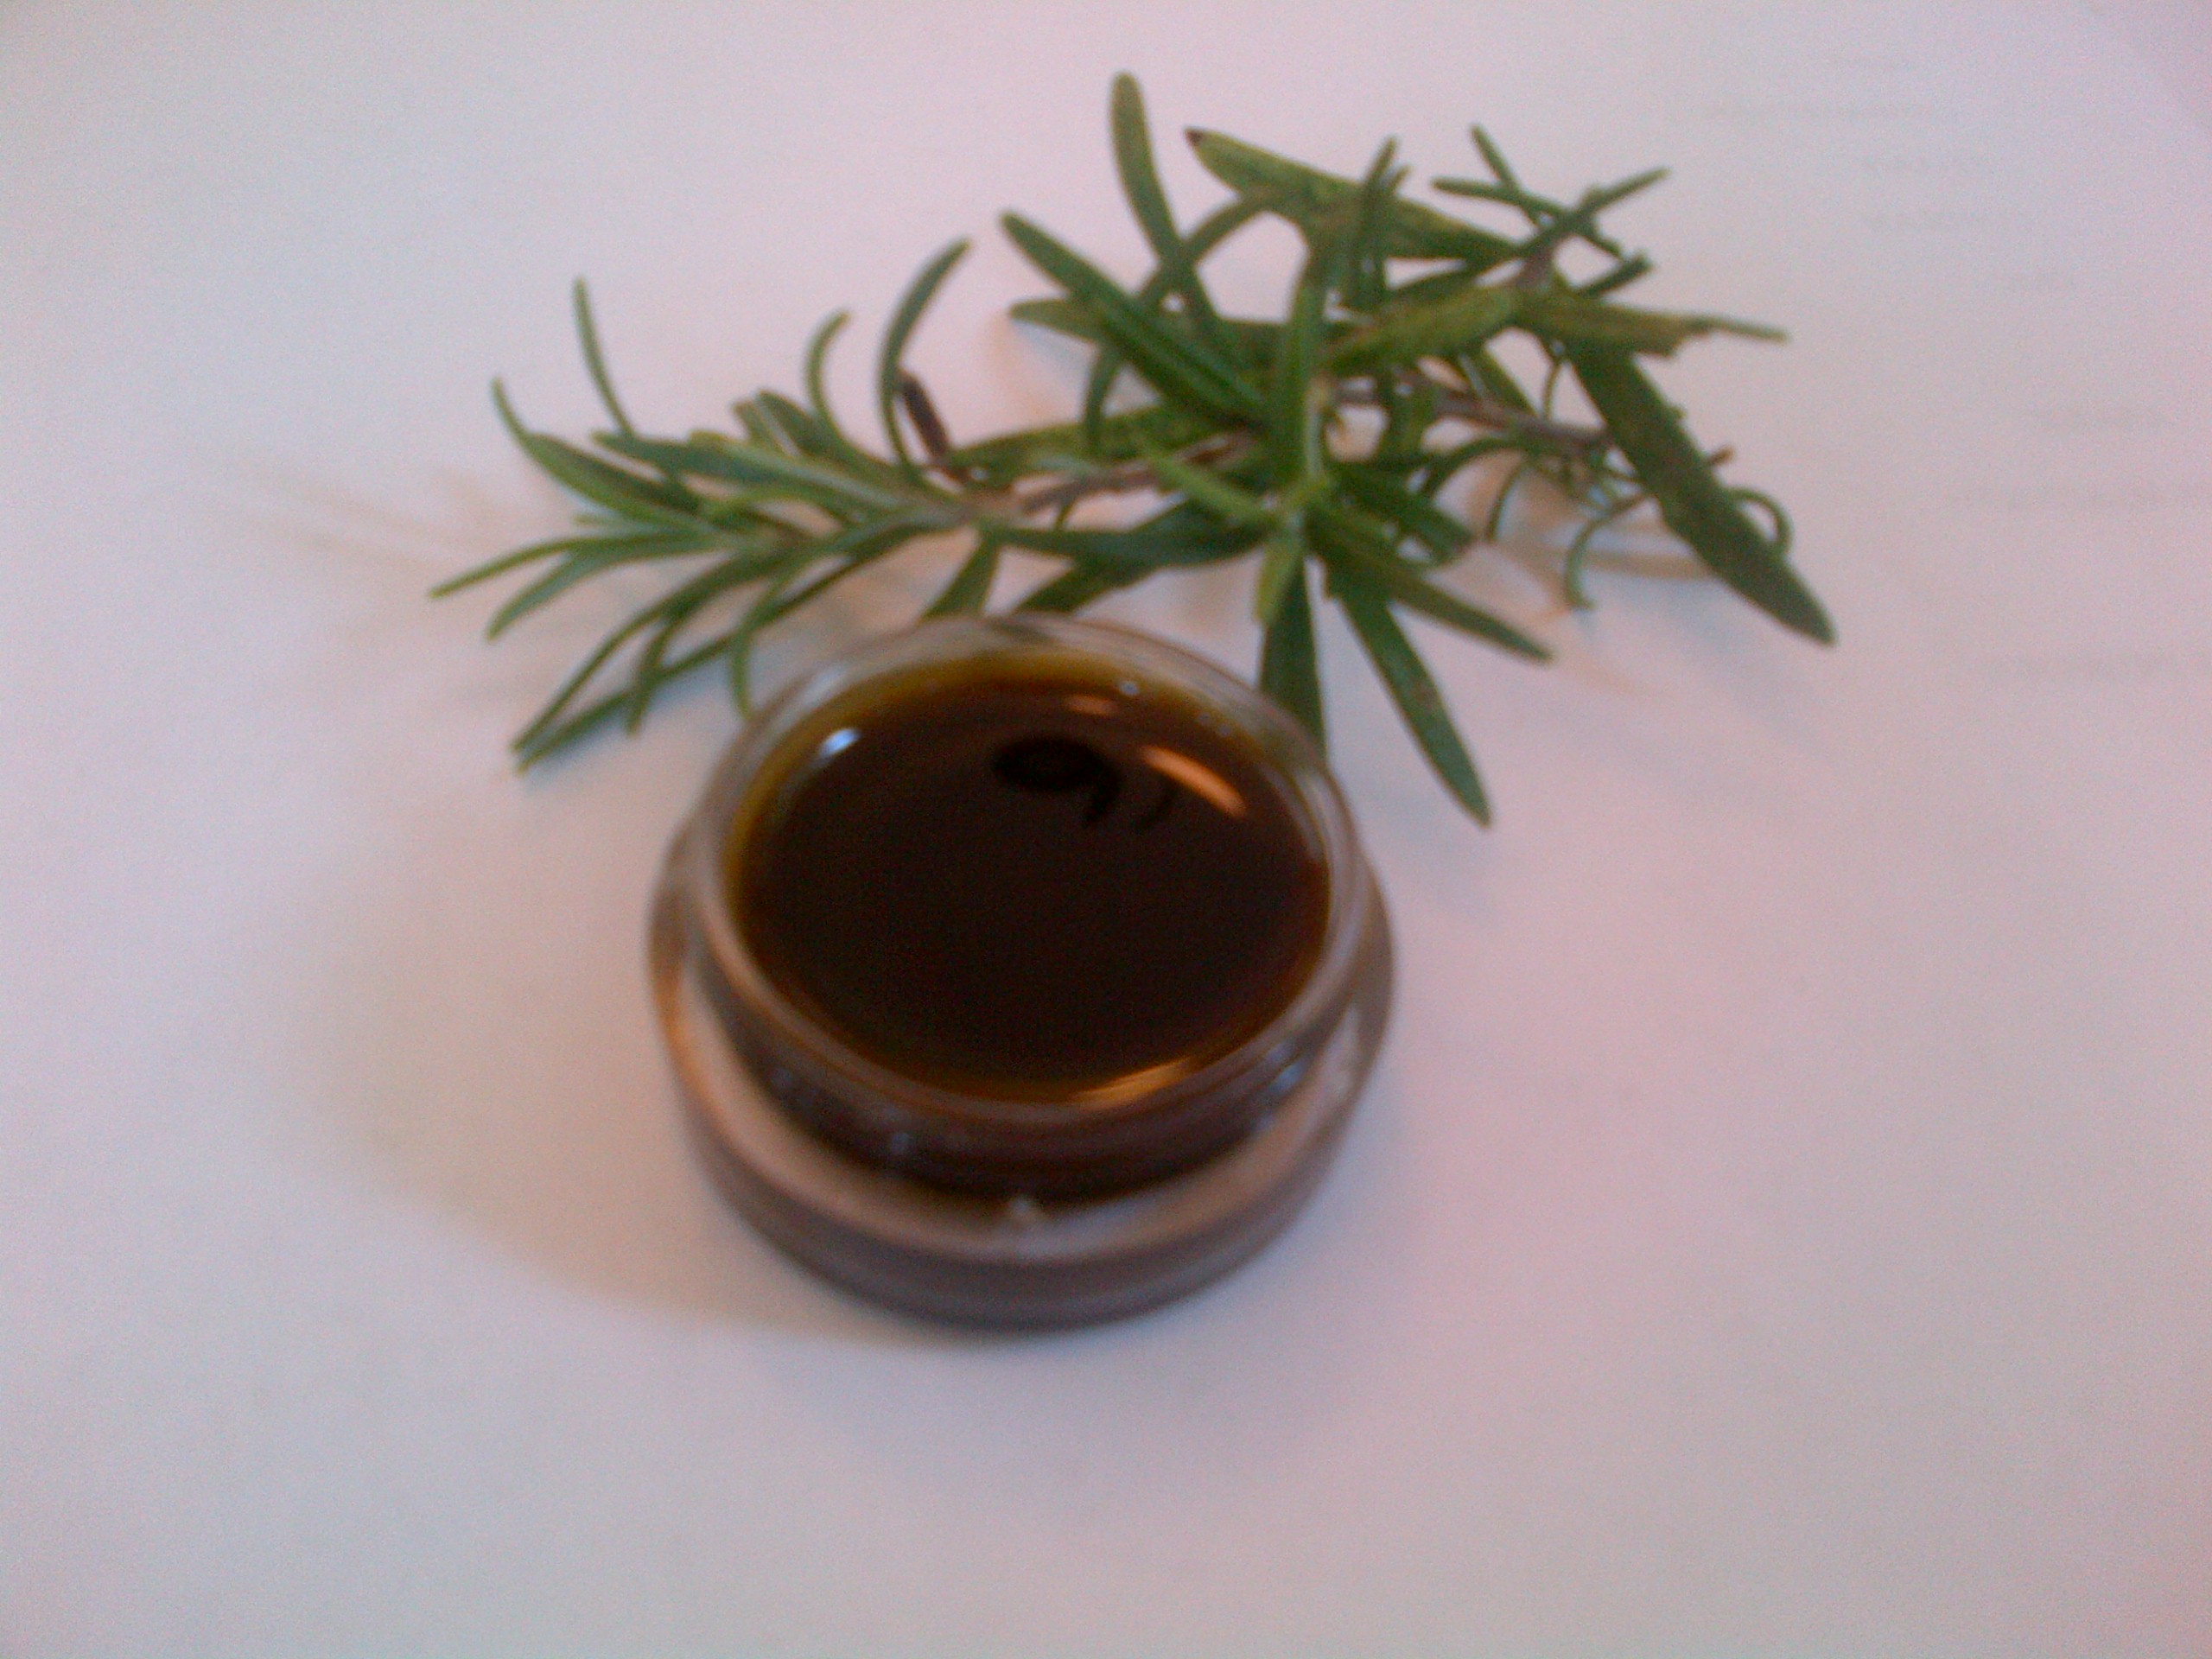 Rosemary Extract Paste